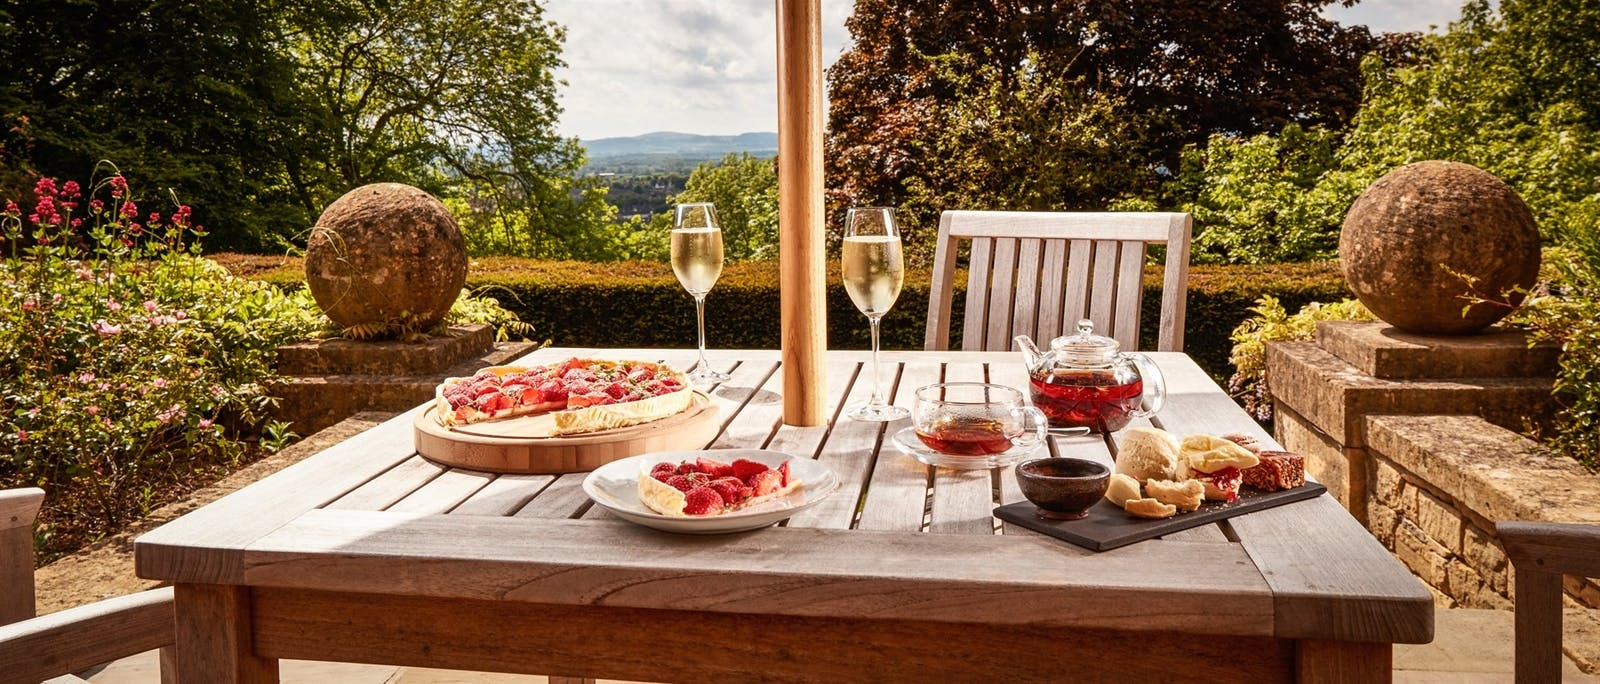 Outdoor Dining at Foxhill Manor, Farncombe Estate, England, UK